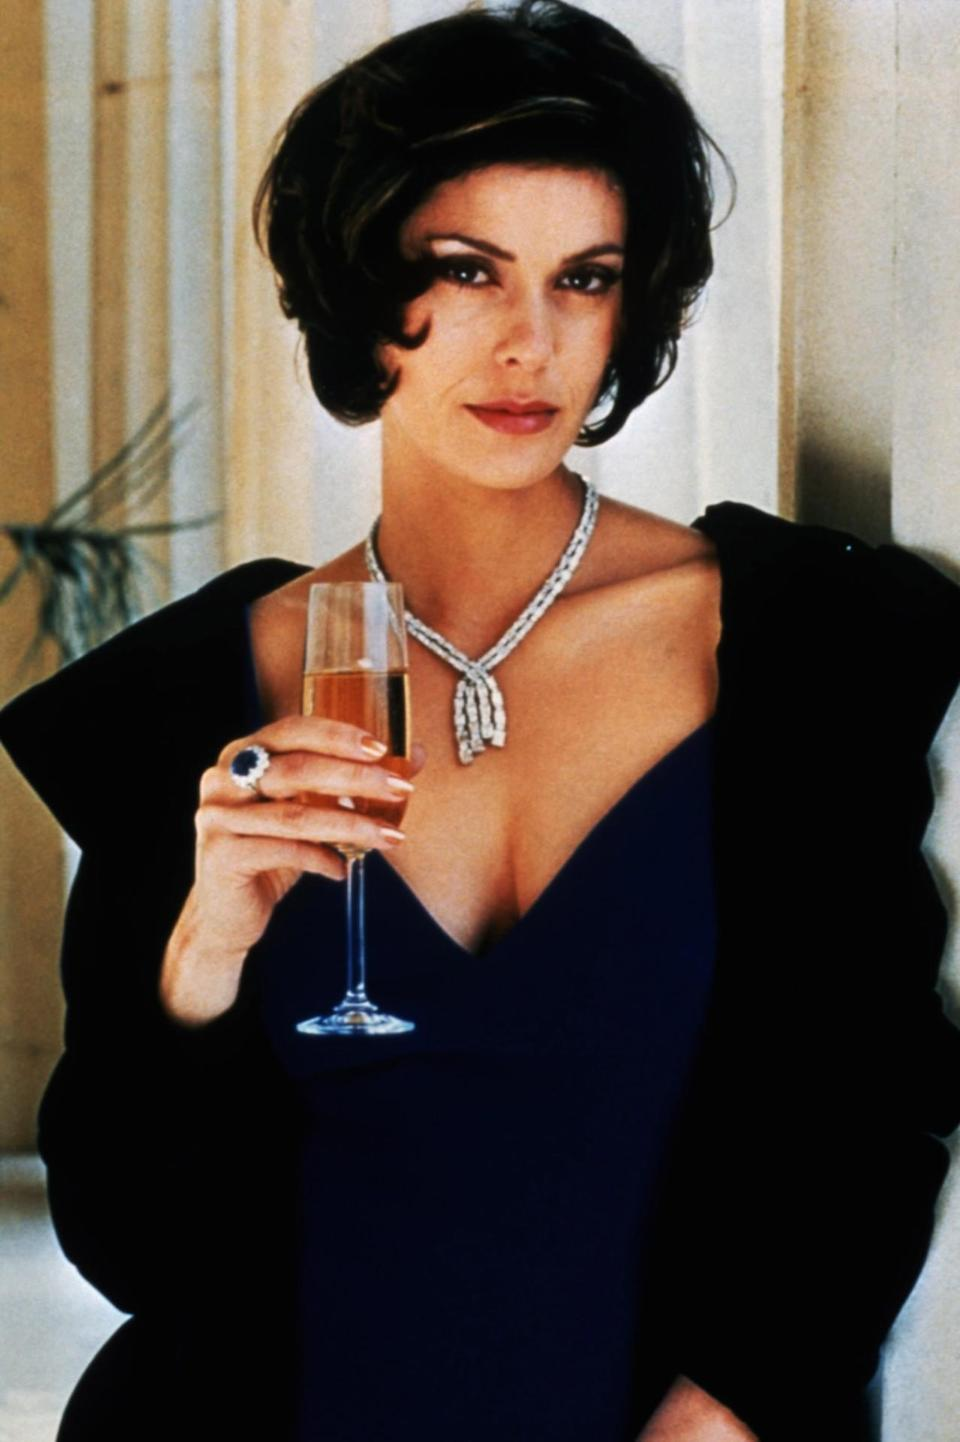 <p>As Bond's ex-girlfriend, Carver is now married to the film's villain, Elliot Carver, a media mogul who will stop at nothing — literally global war — to boost his empire. Dripping in diamonds with a chic bob, she's another unfortunate casualty who winds up in the crossfire.<i> (Photo: Everett Collection)<br></i></p>